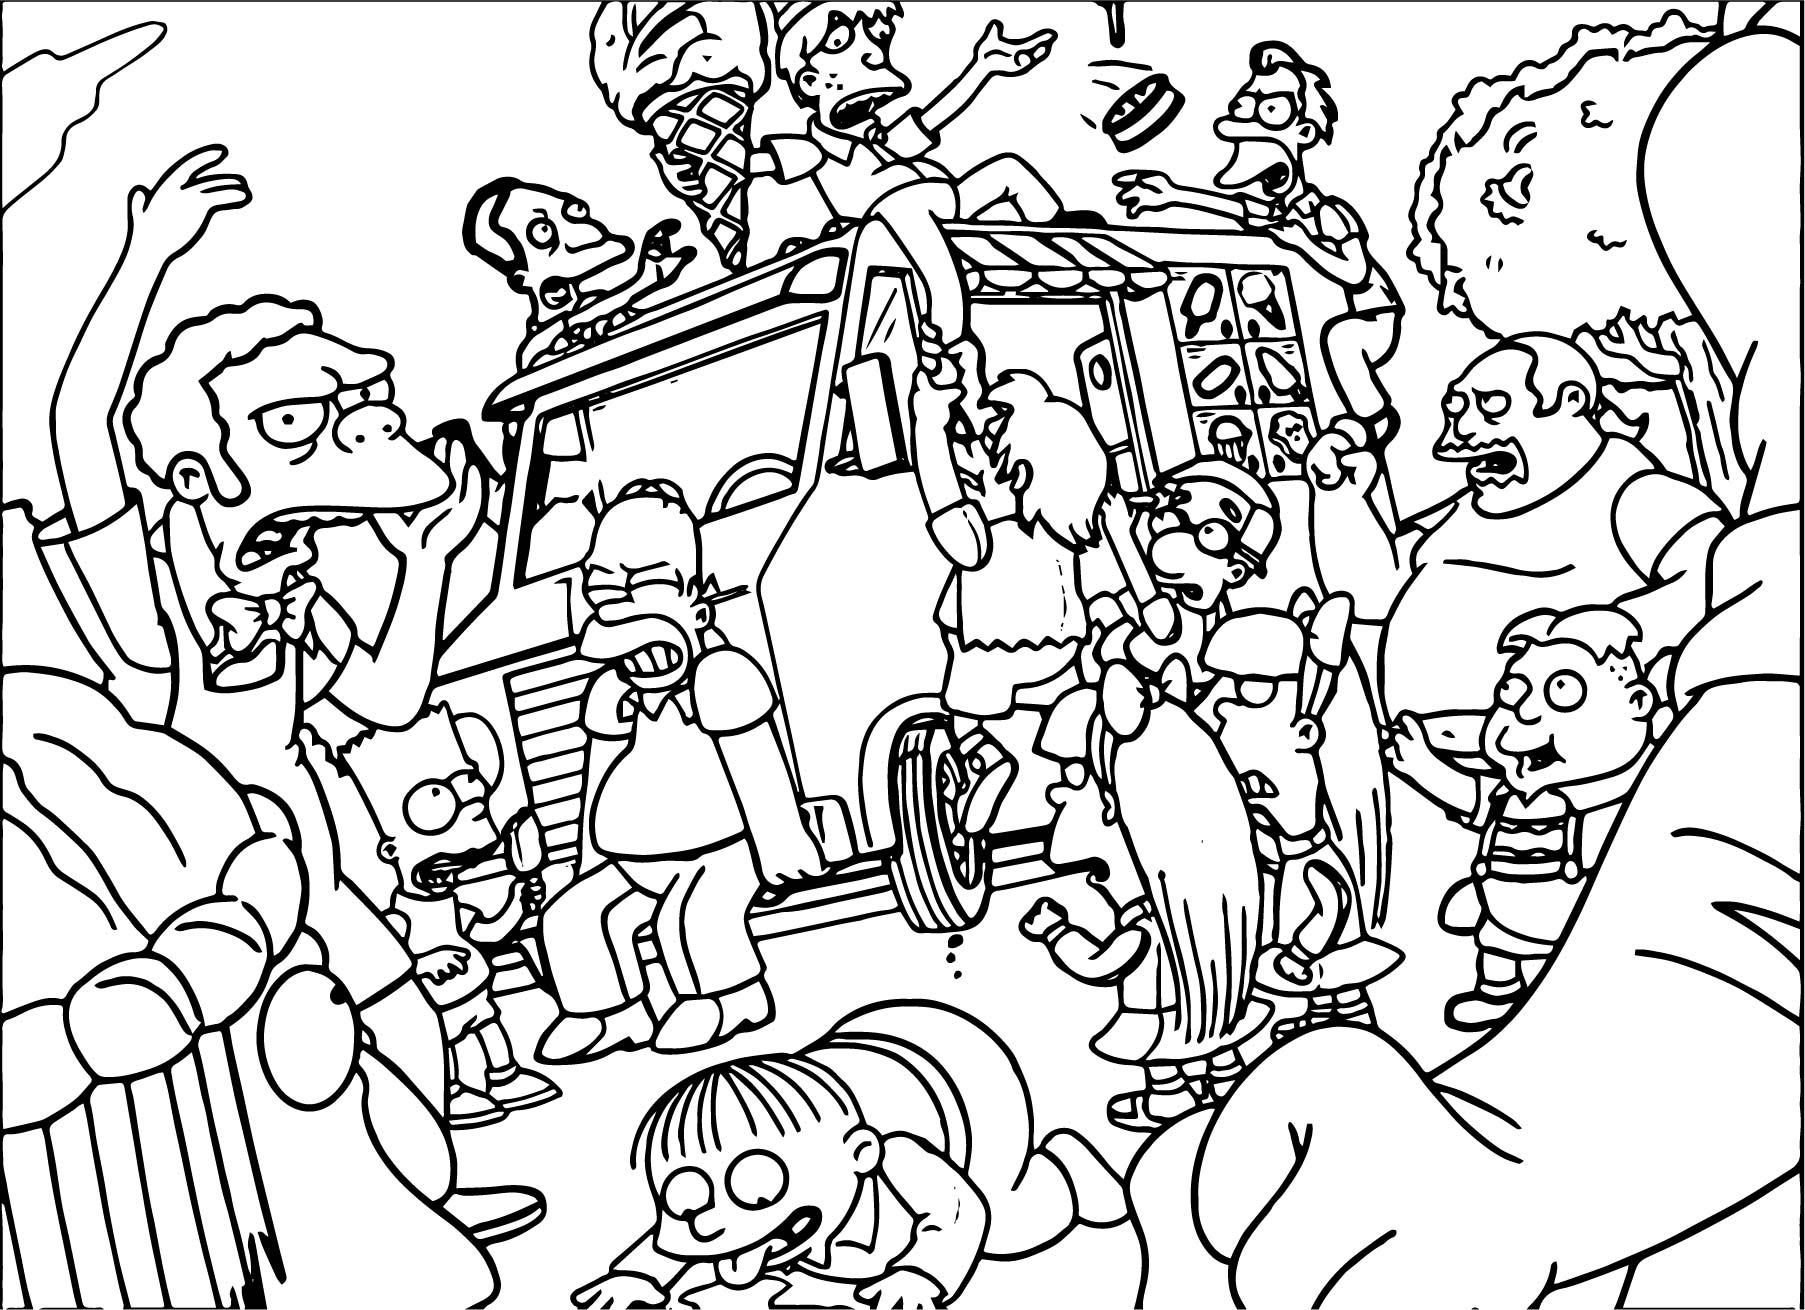 The Simpsons Coloring Pages Coloring Book Simpsons Coloring Pages Book Bart Simpson Pictures